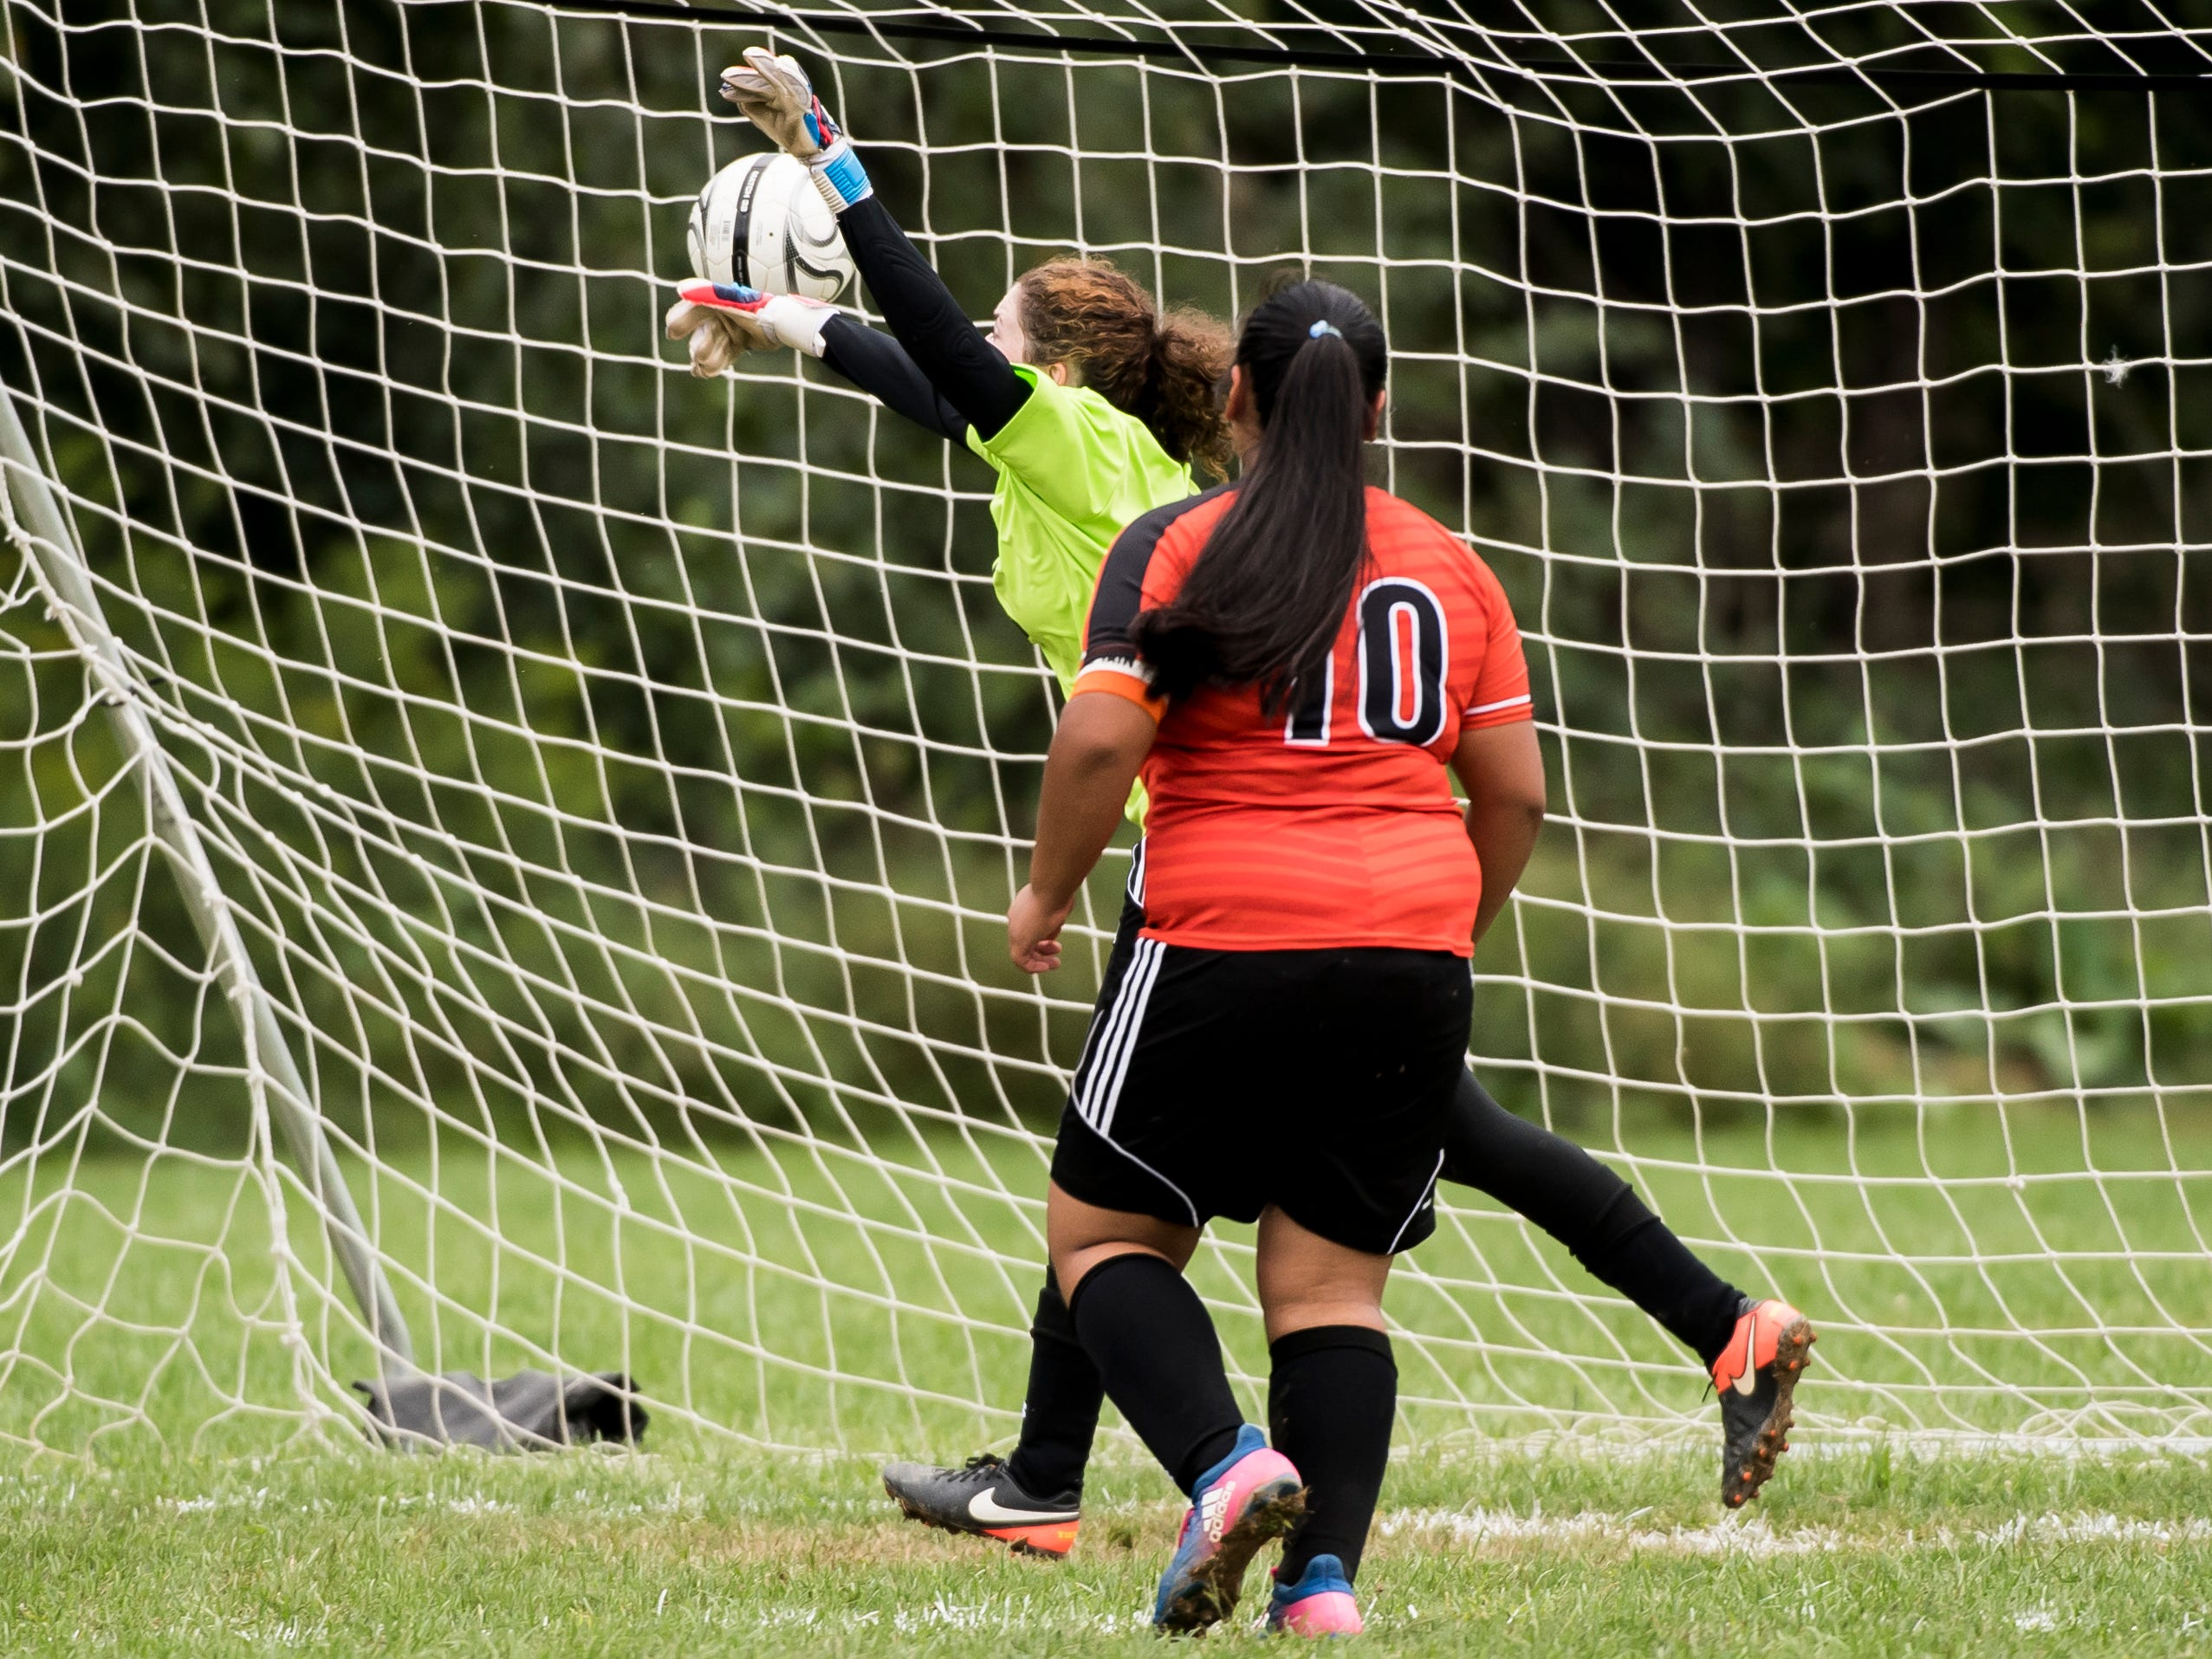 The ball soars just past Hanover goalkeeper Sabrina Hobson and into the back of the net for a Fairfield goal on Thursday, September 13, 2018.